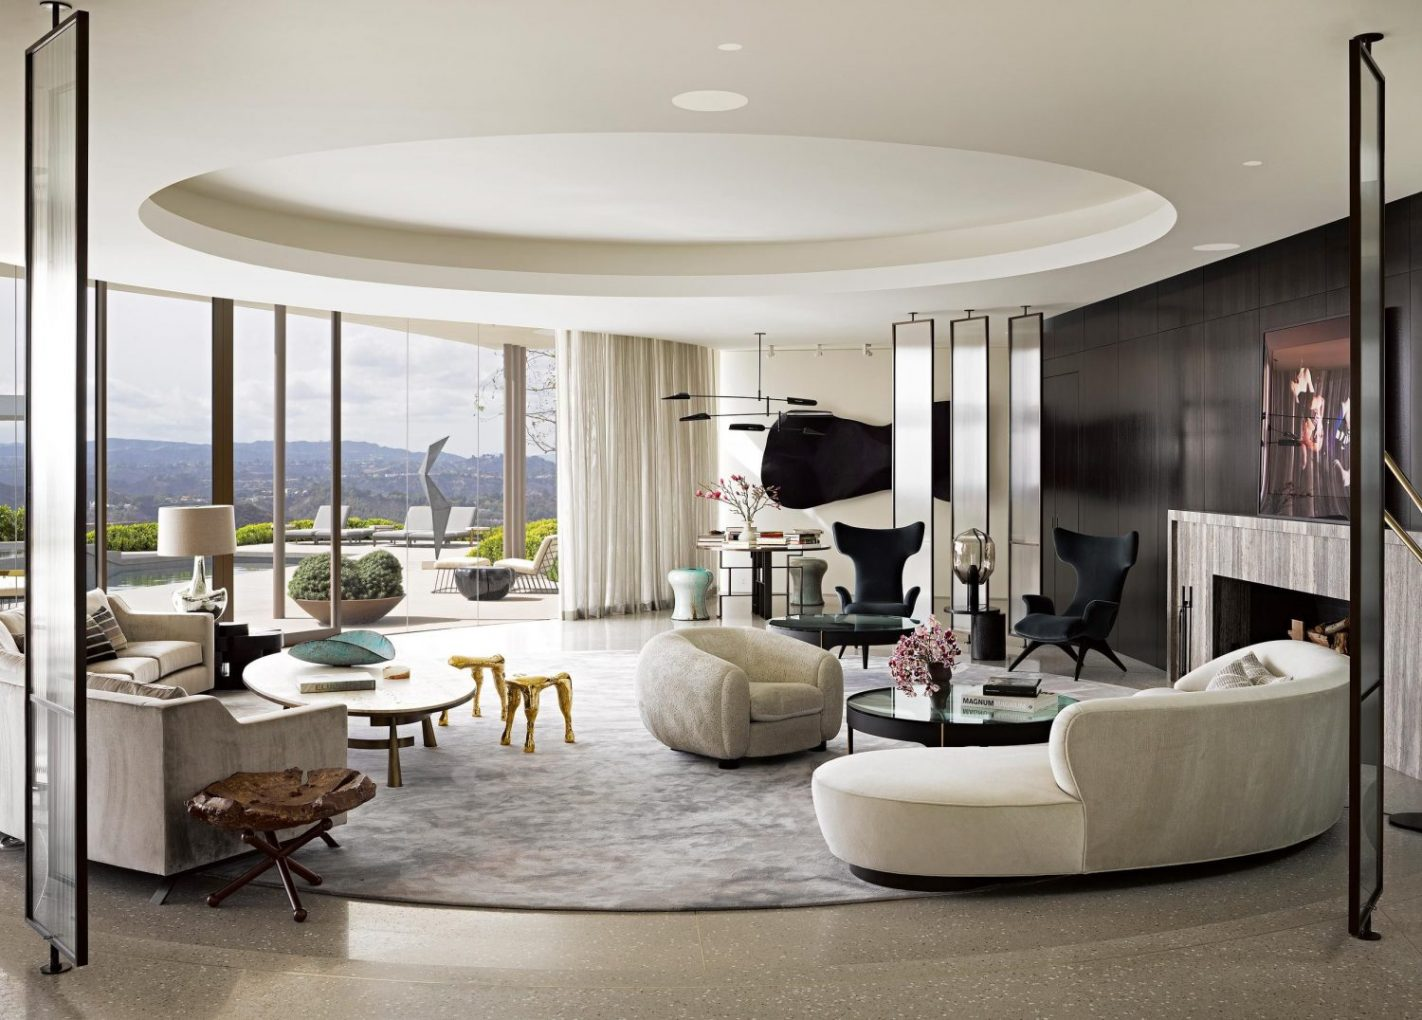 los angeles Discover Here The Best Interior Designers From Los Angeles 32a45653bb5249c8a0005dc5b41885e0 scaled